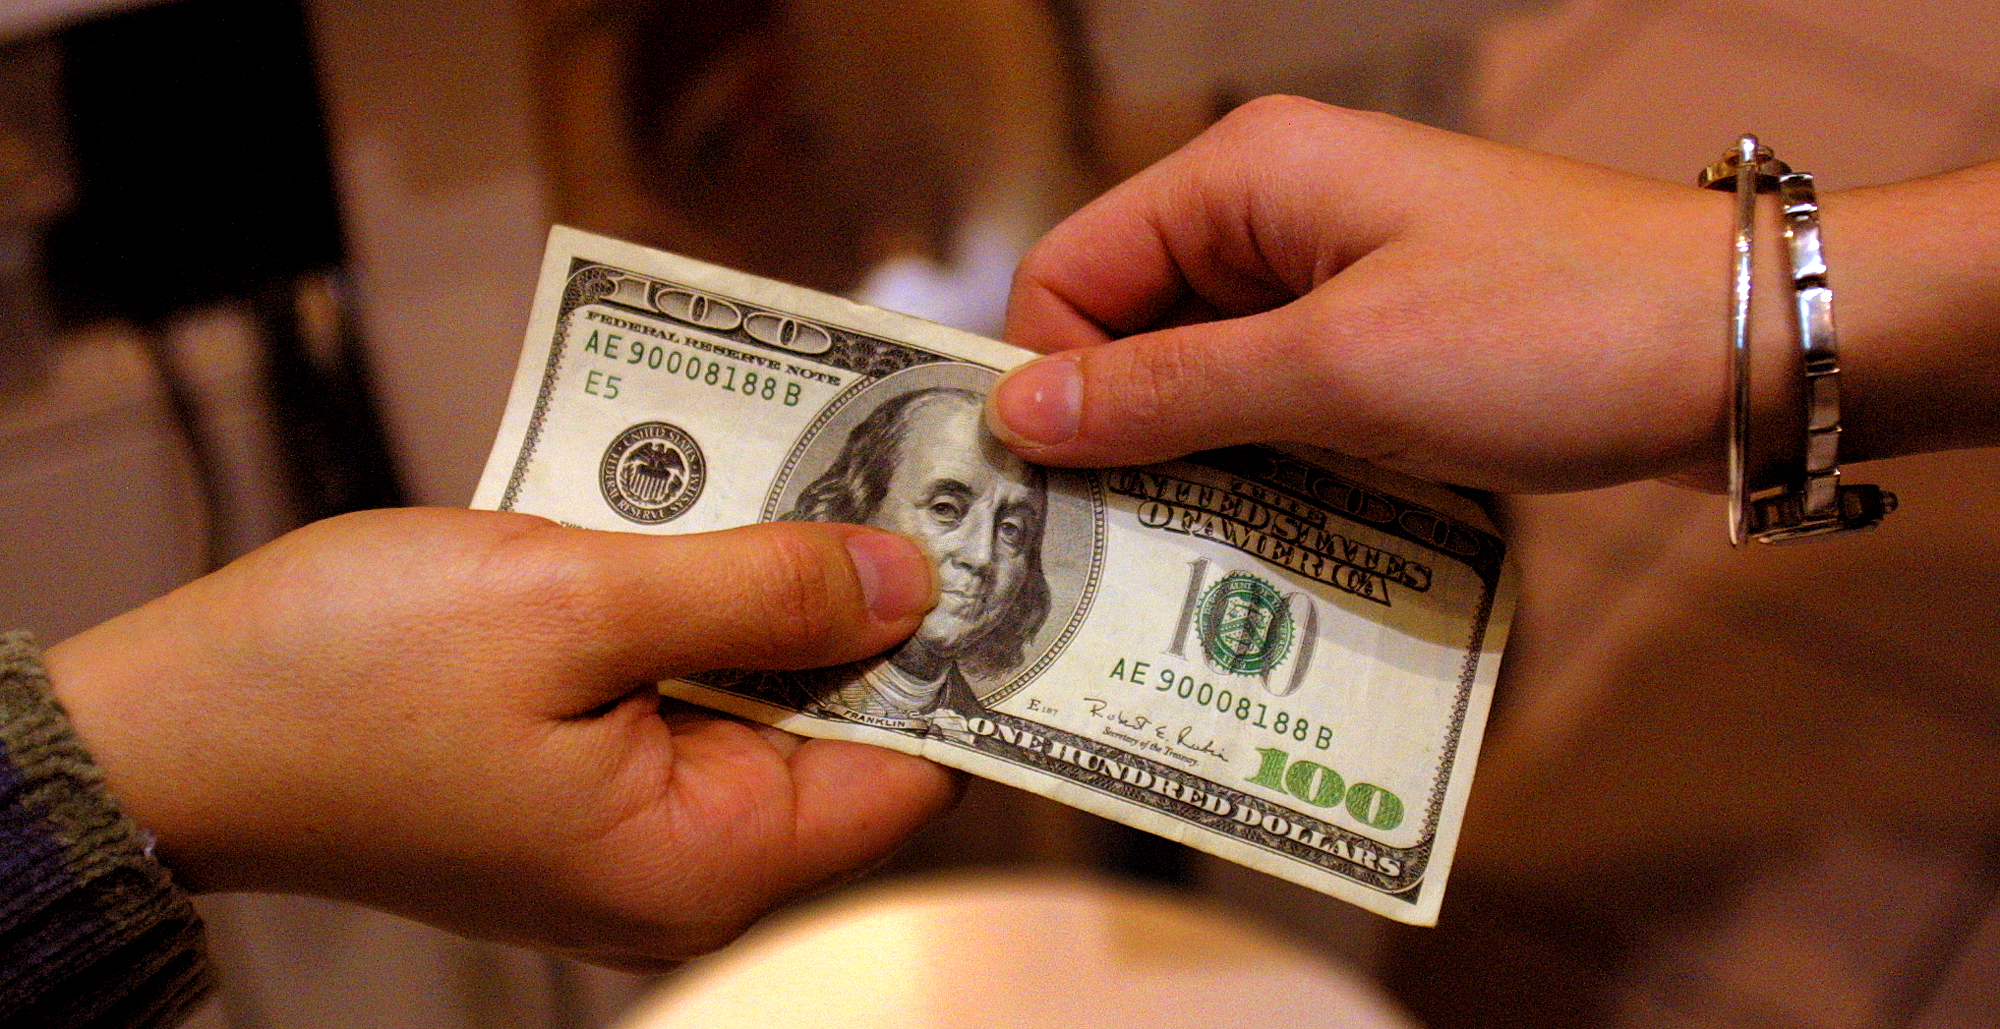 Guaranteed $1,000 Monthly Income Program Touted in Los Angeles County